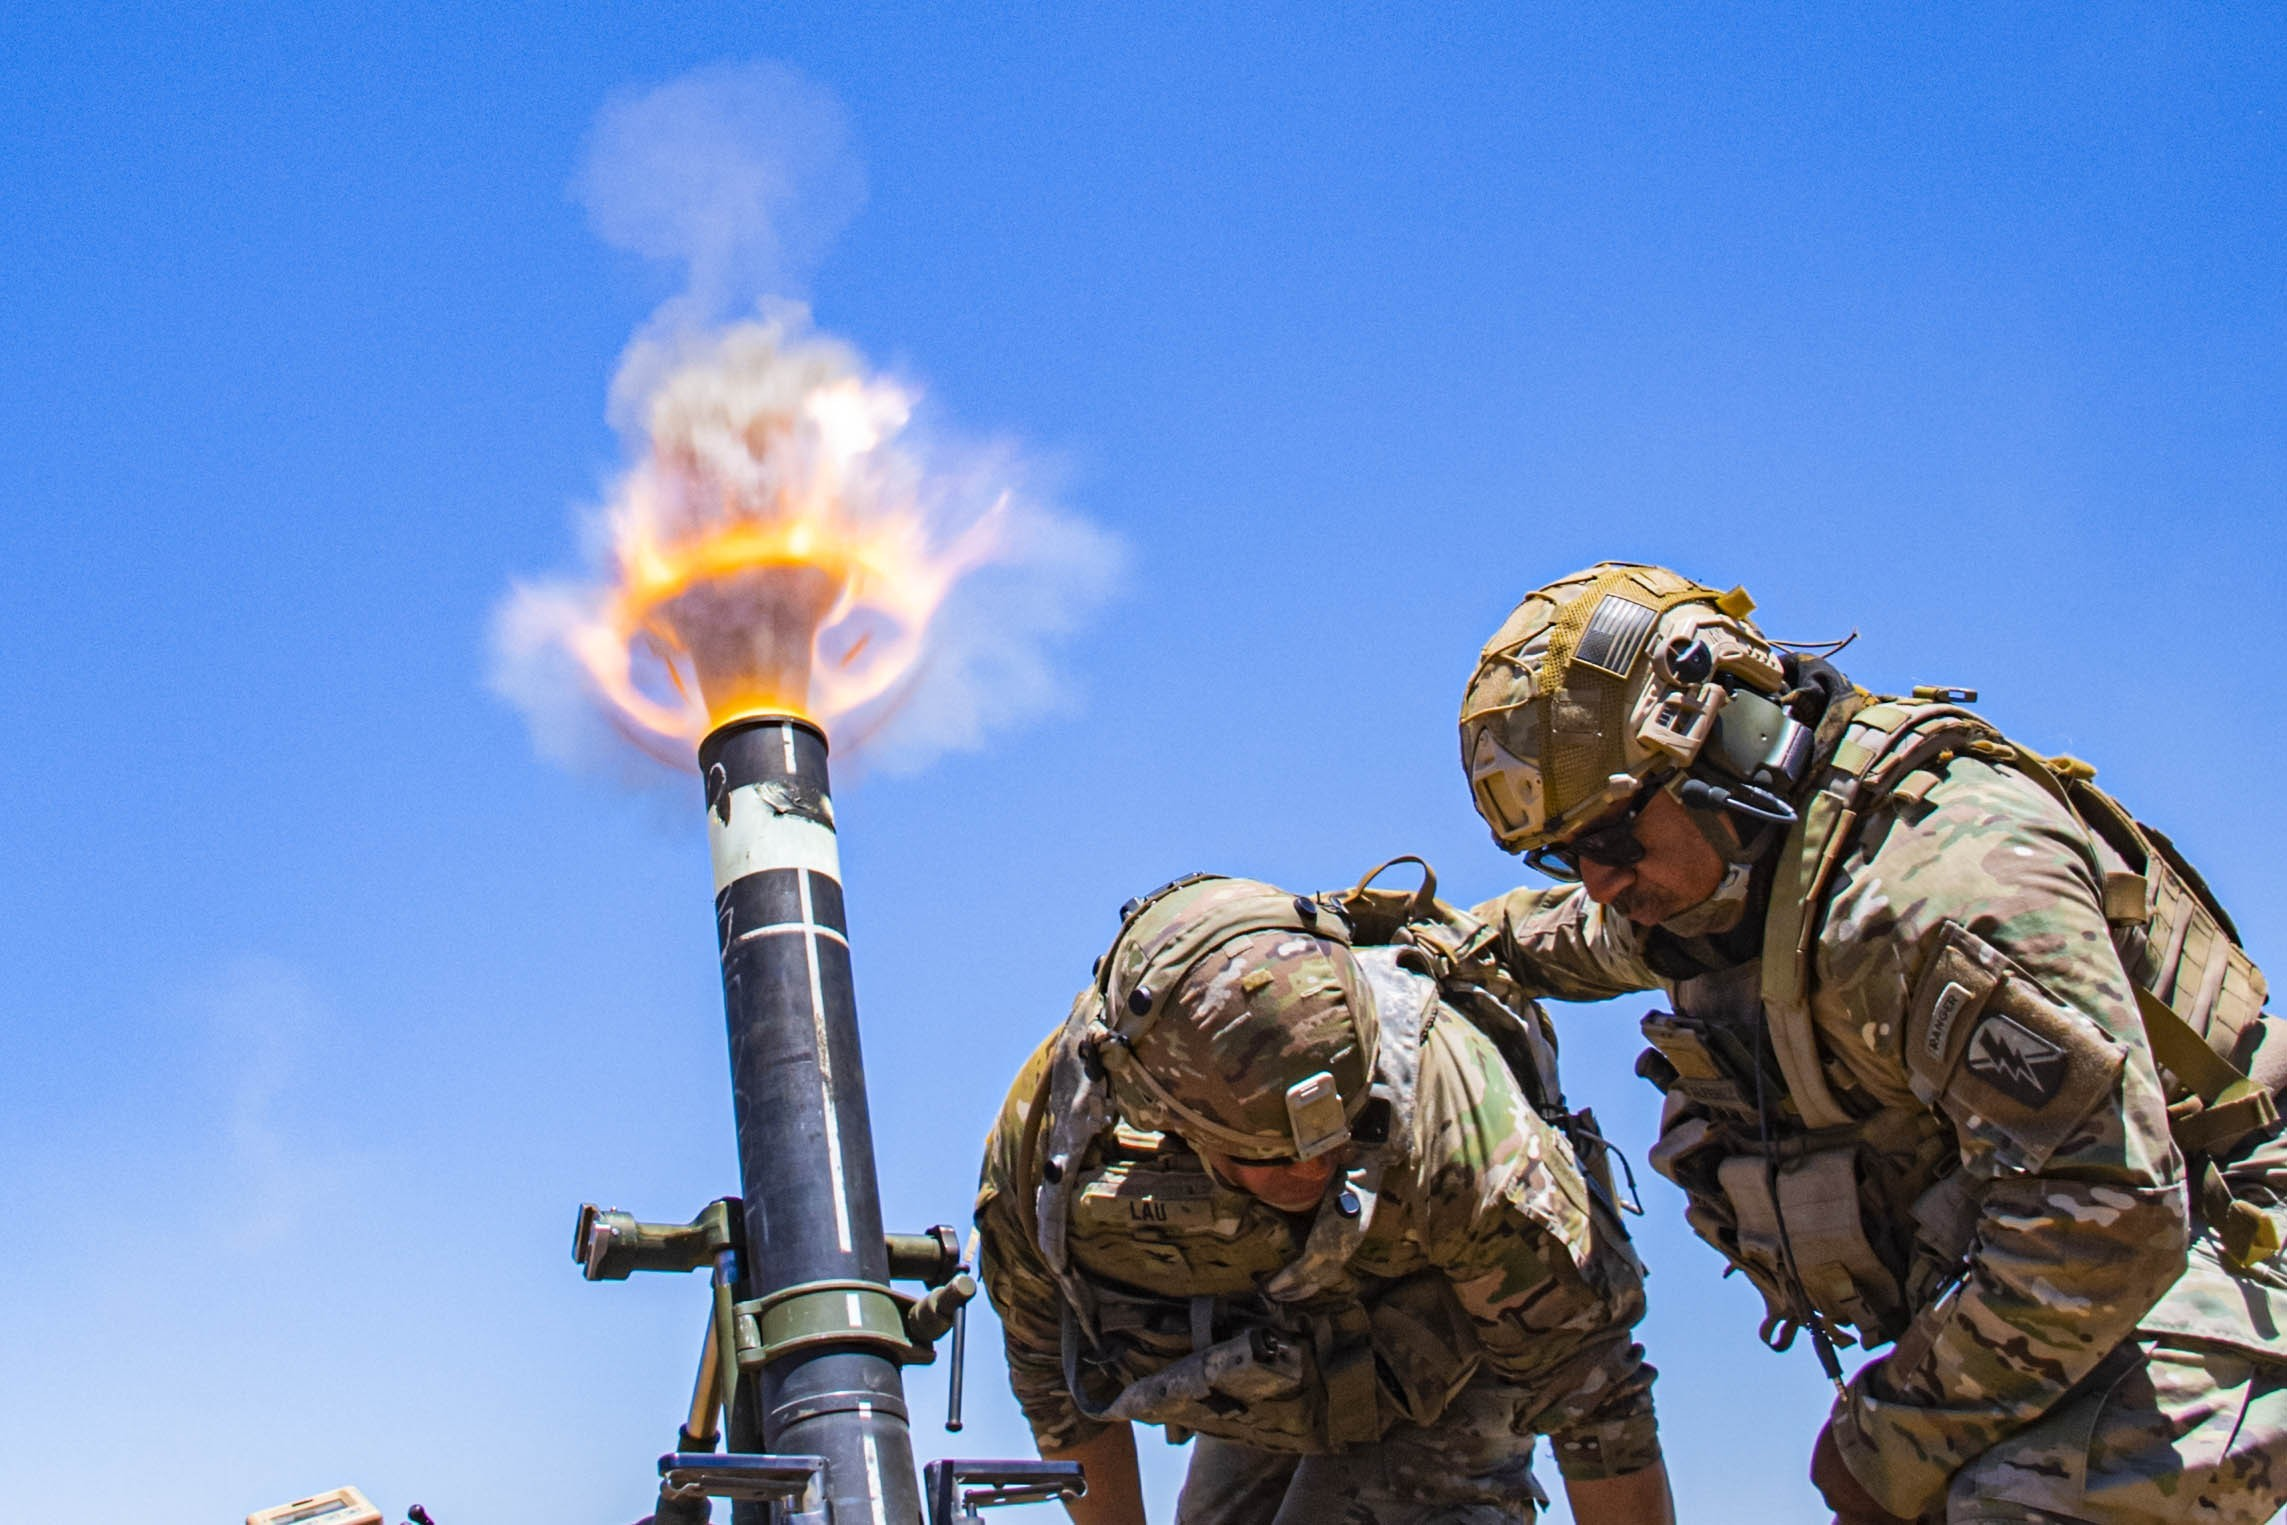 Army Col. Randy Lau fires a 120 mm mortar during a live-fire exercise at Camp Roberts, Calif., June 15. (Staff Sgt. Walter Lowell/Army)